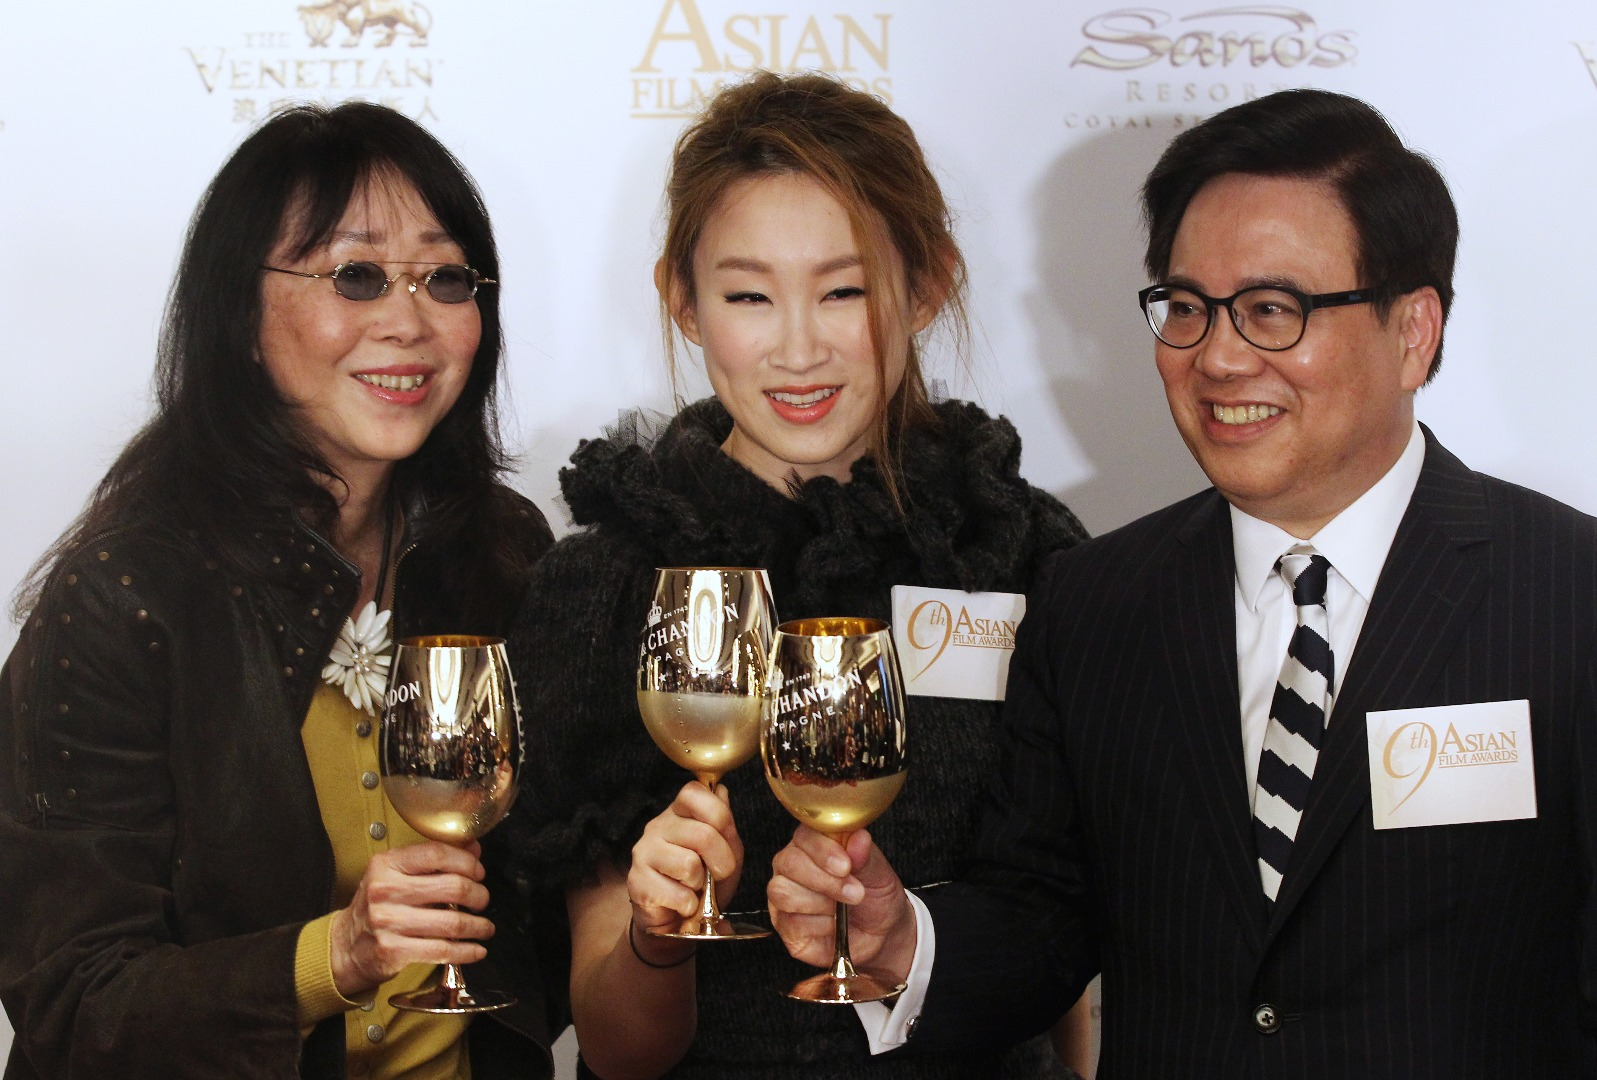 SCMP 25FEB15 NS AWARDS2  EDW_1750A.JPG 第9屆亞洲電影大獎-20150325HD 第9屆亞洲電影大獎-20150325HD SCMP 25FEB15 NS AWARDS2 EDW 1750A 48575279